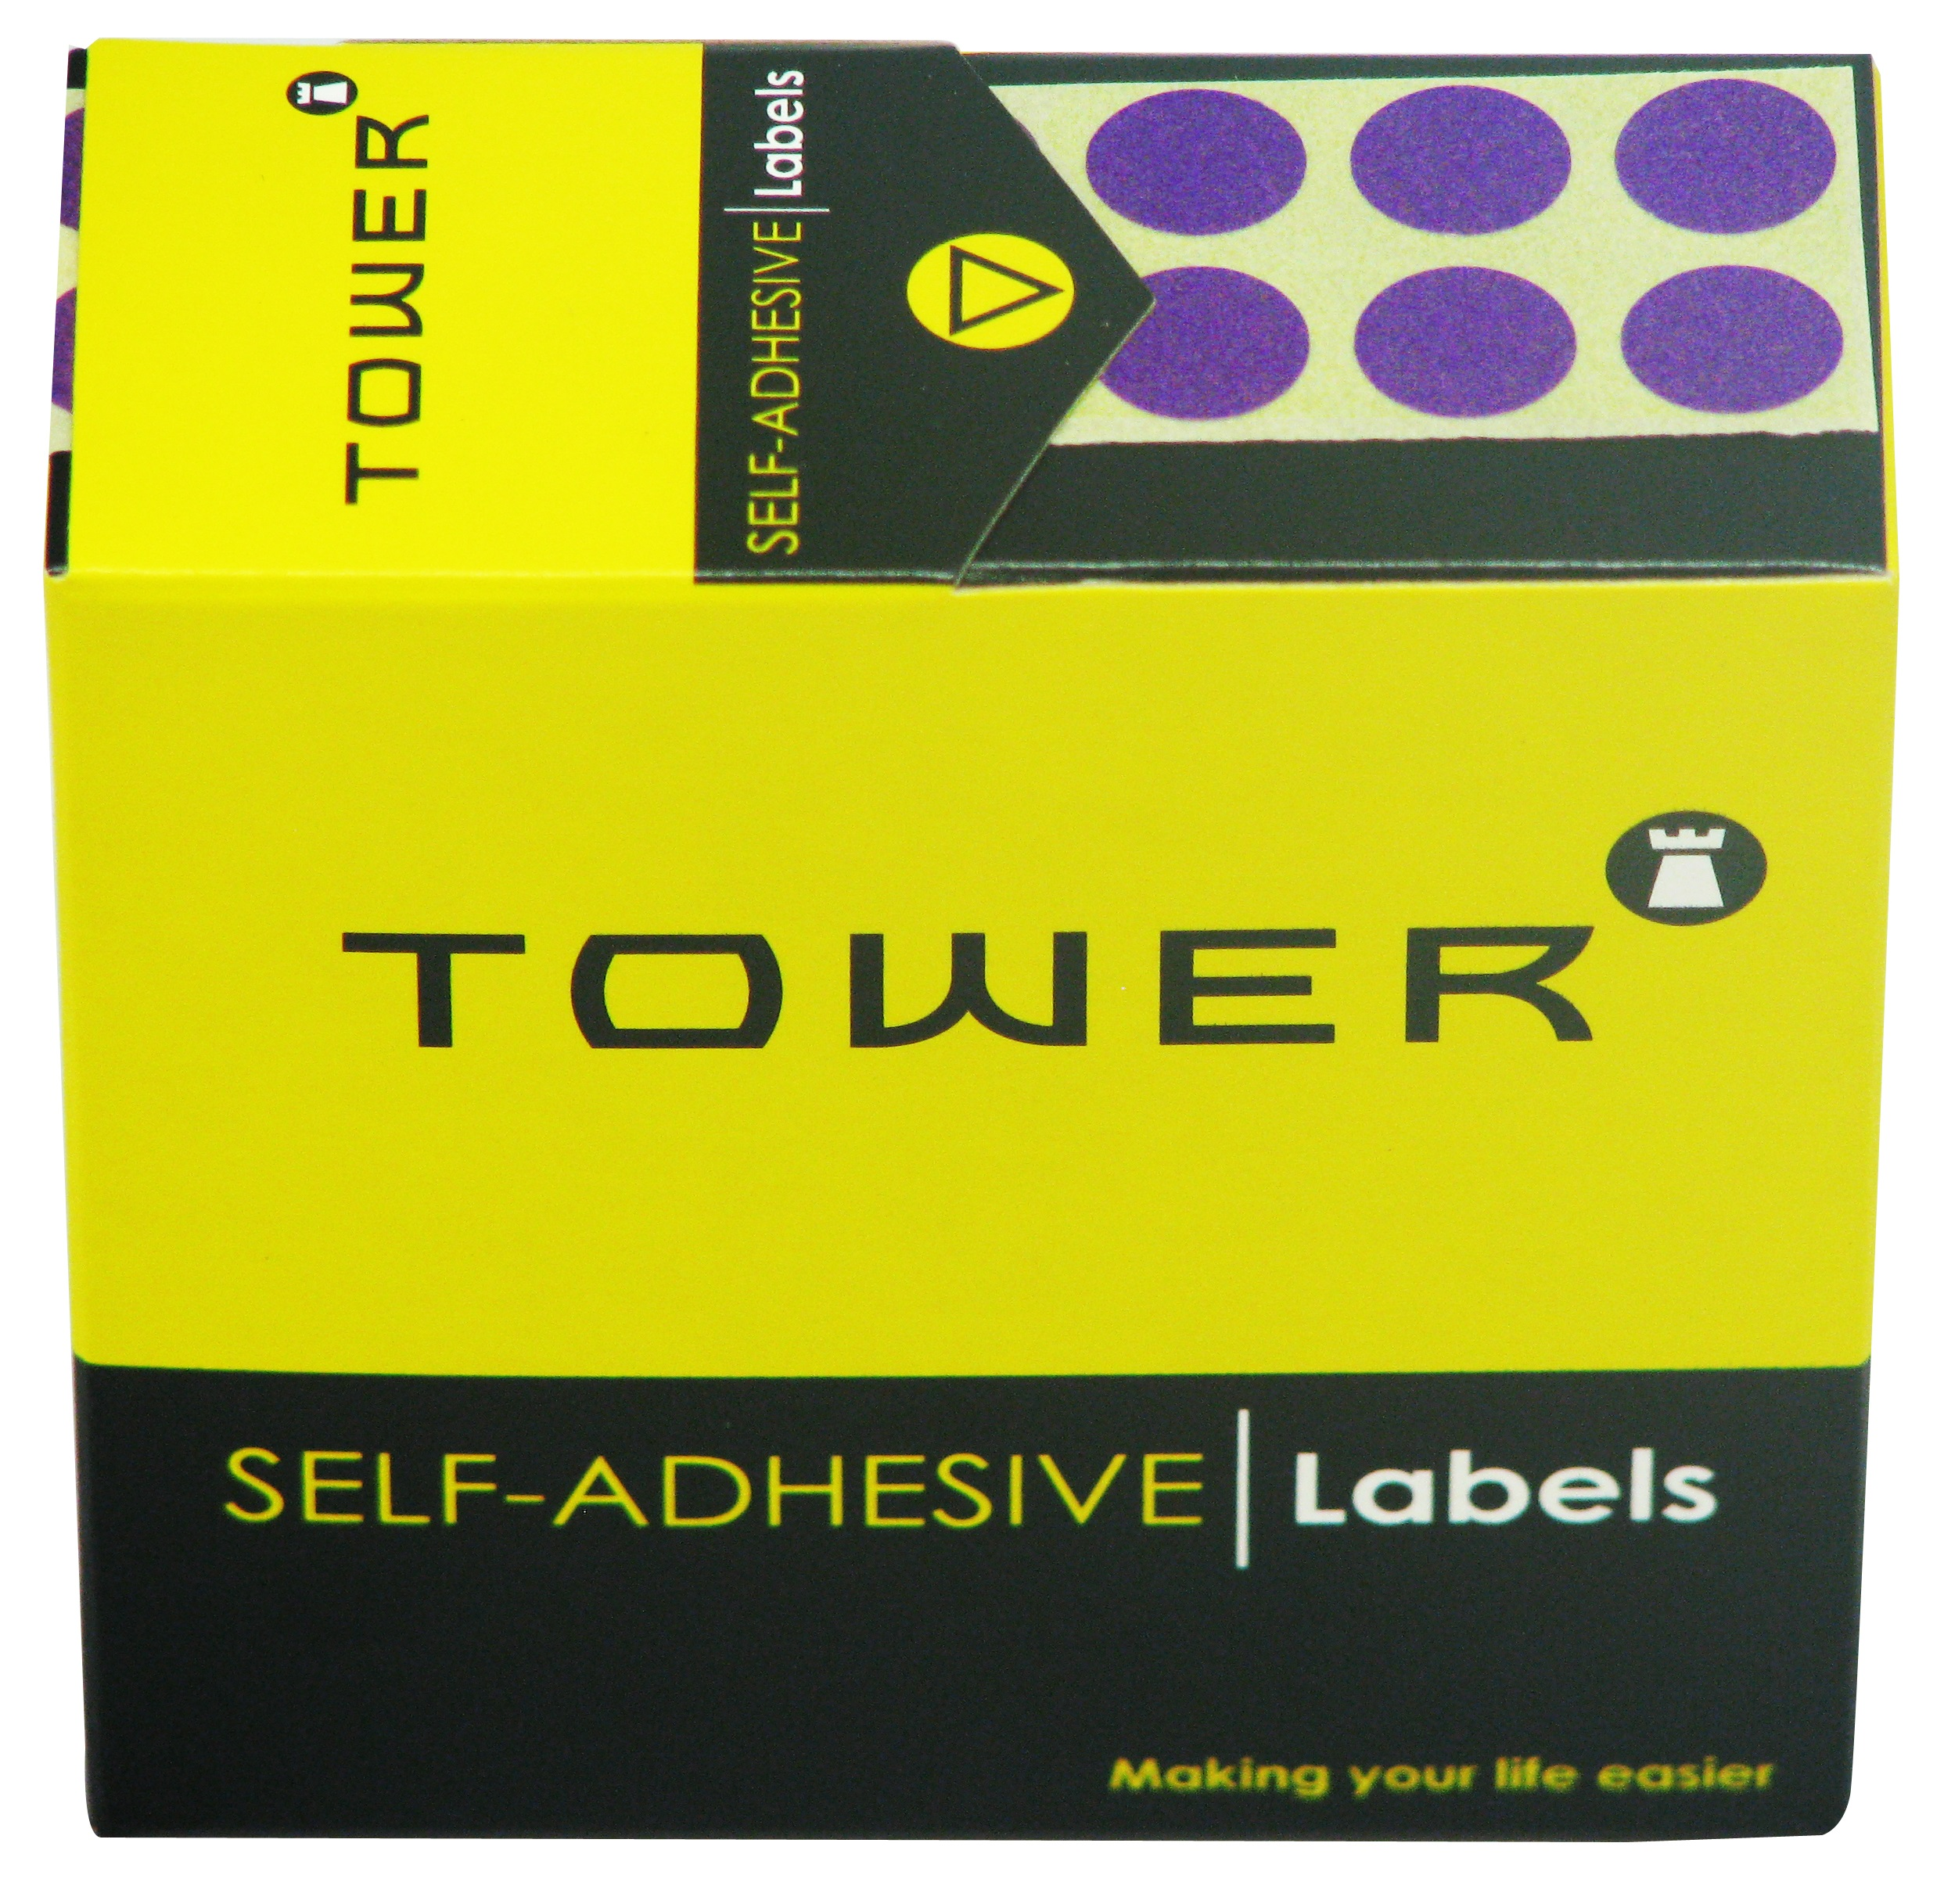 Tower C13 Label Purple